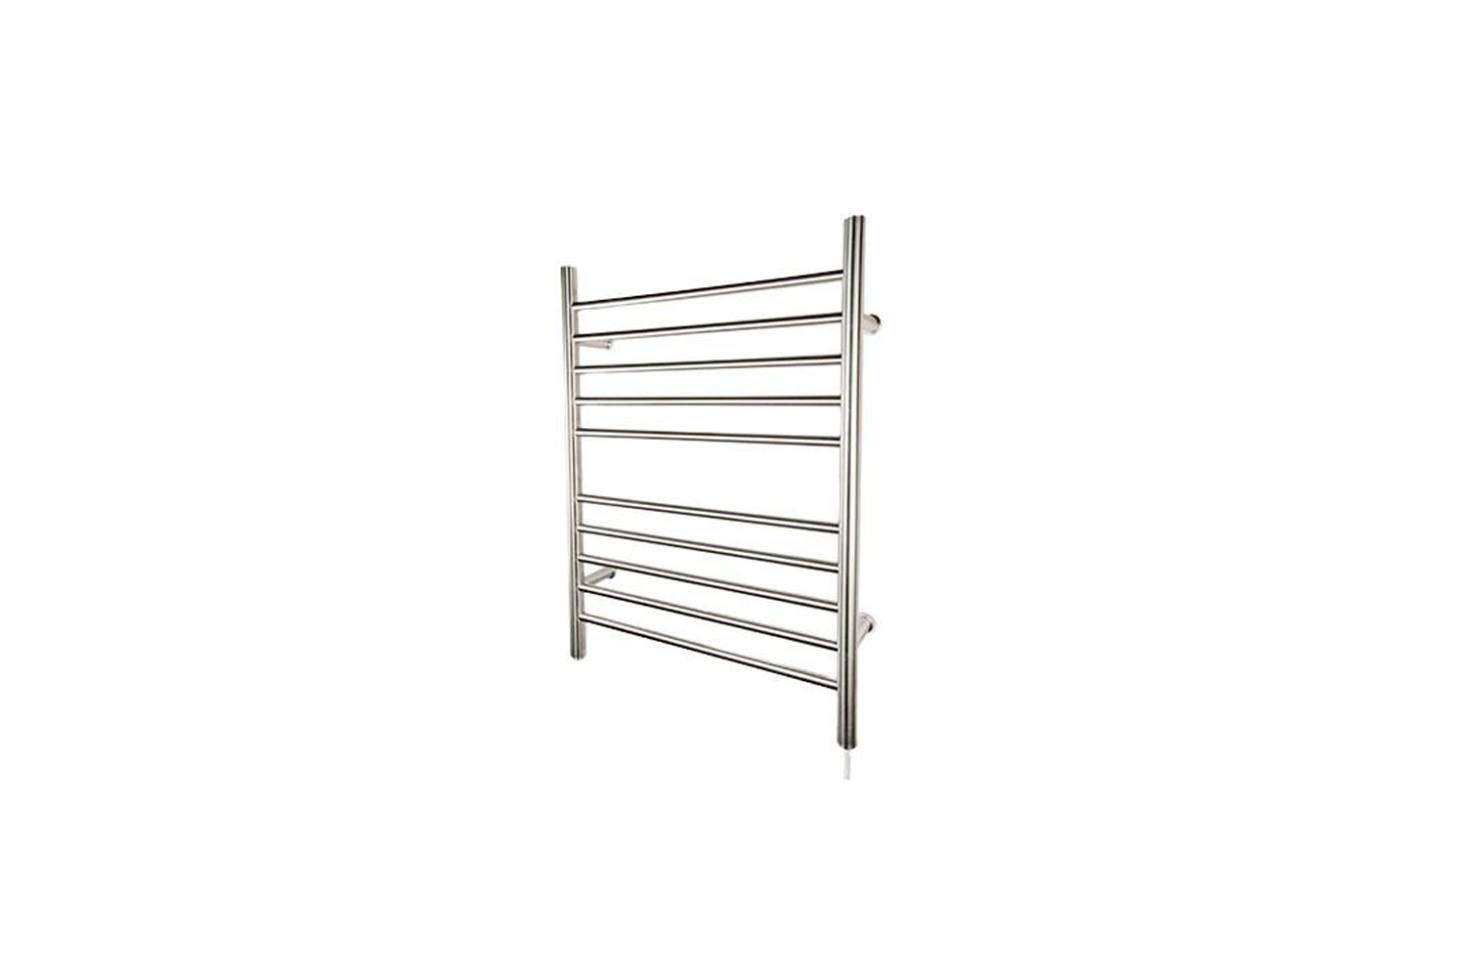 The Amba Radiant Straight Plug-in Towel Warmer in Brushed or Polished Steel is $217.95 at Only Towel Warmers.